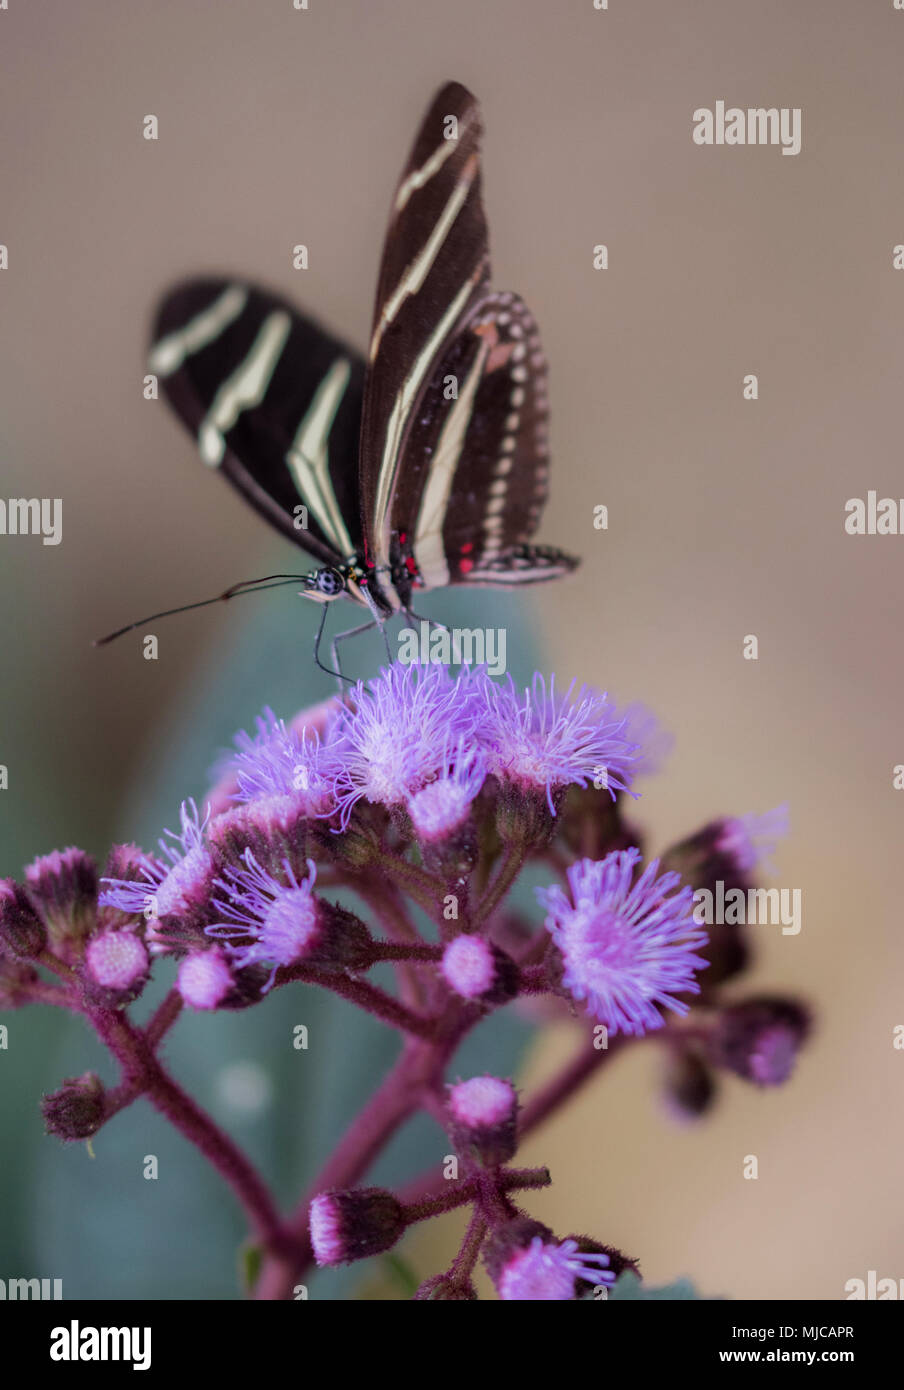 Beautiful red and black butterfly on flower - Stock Image